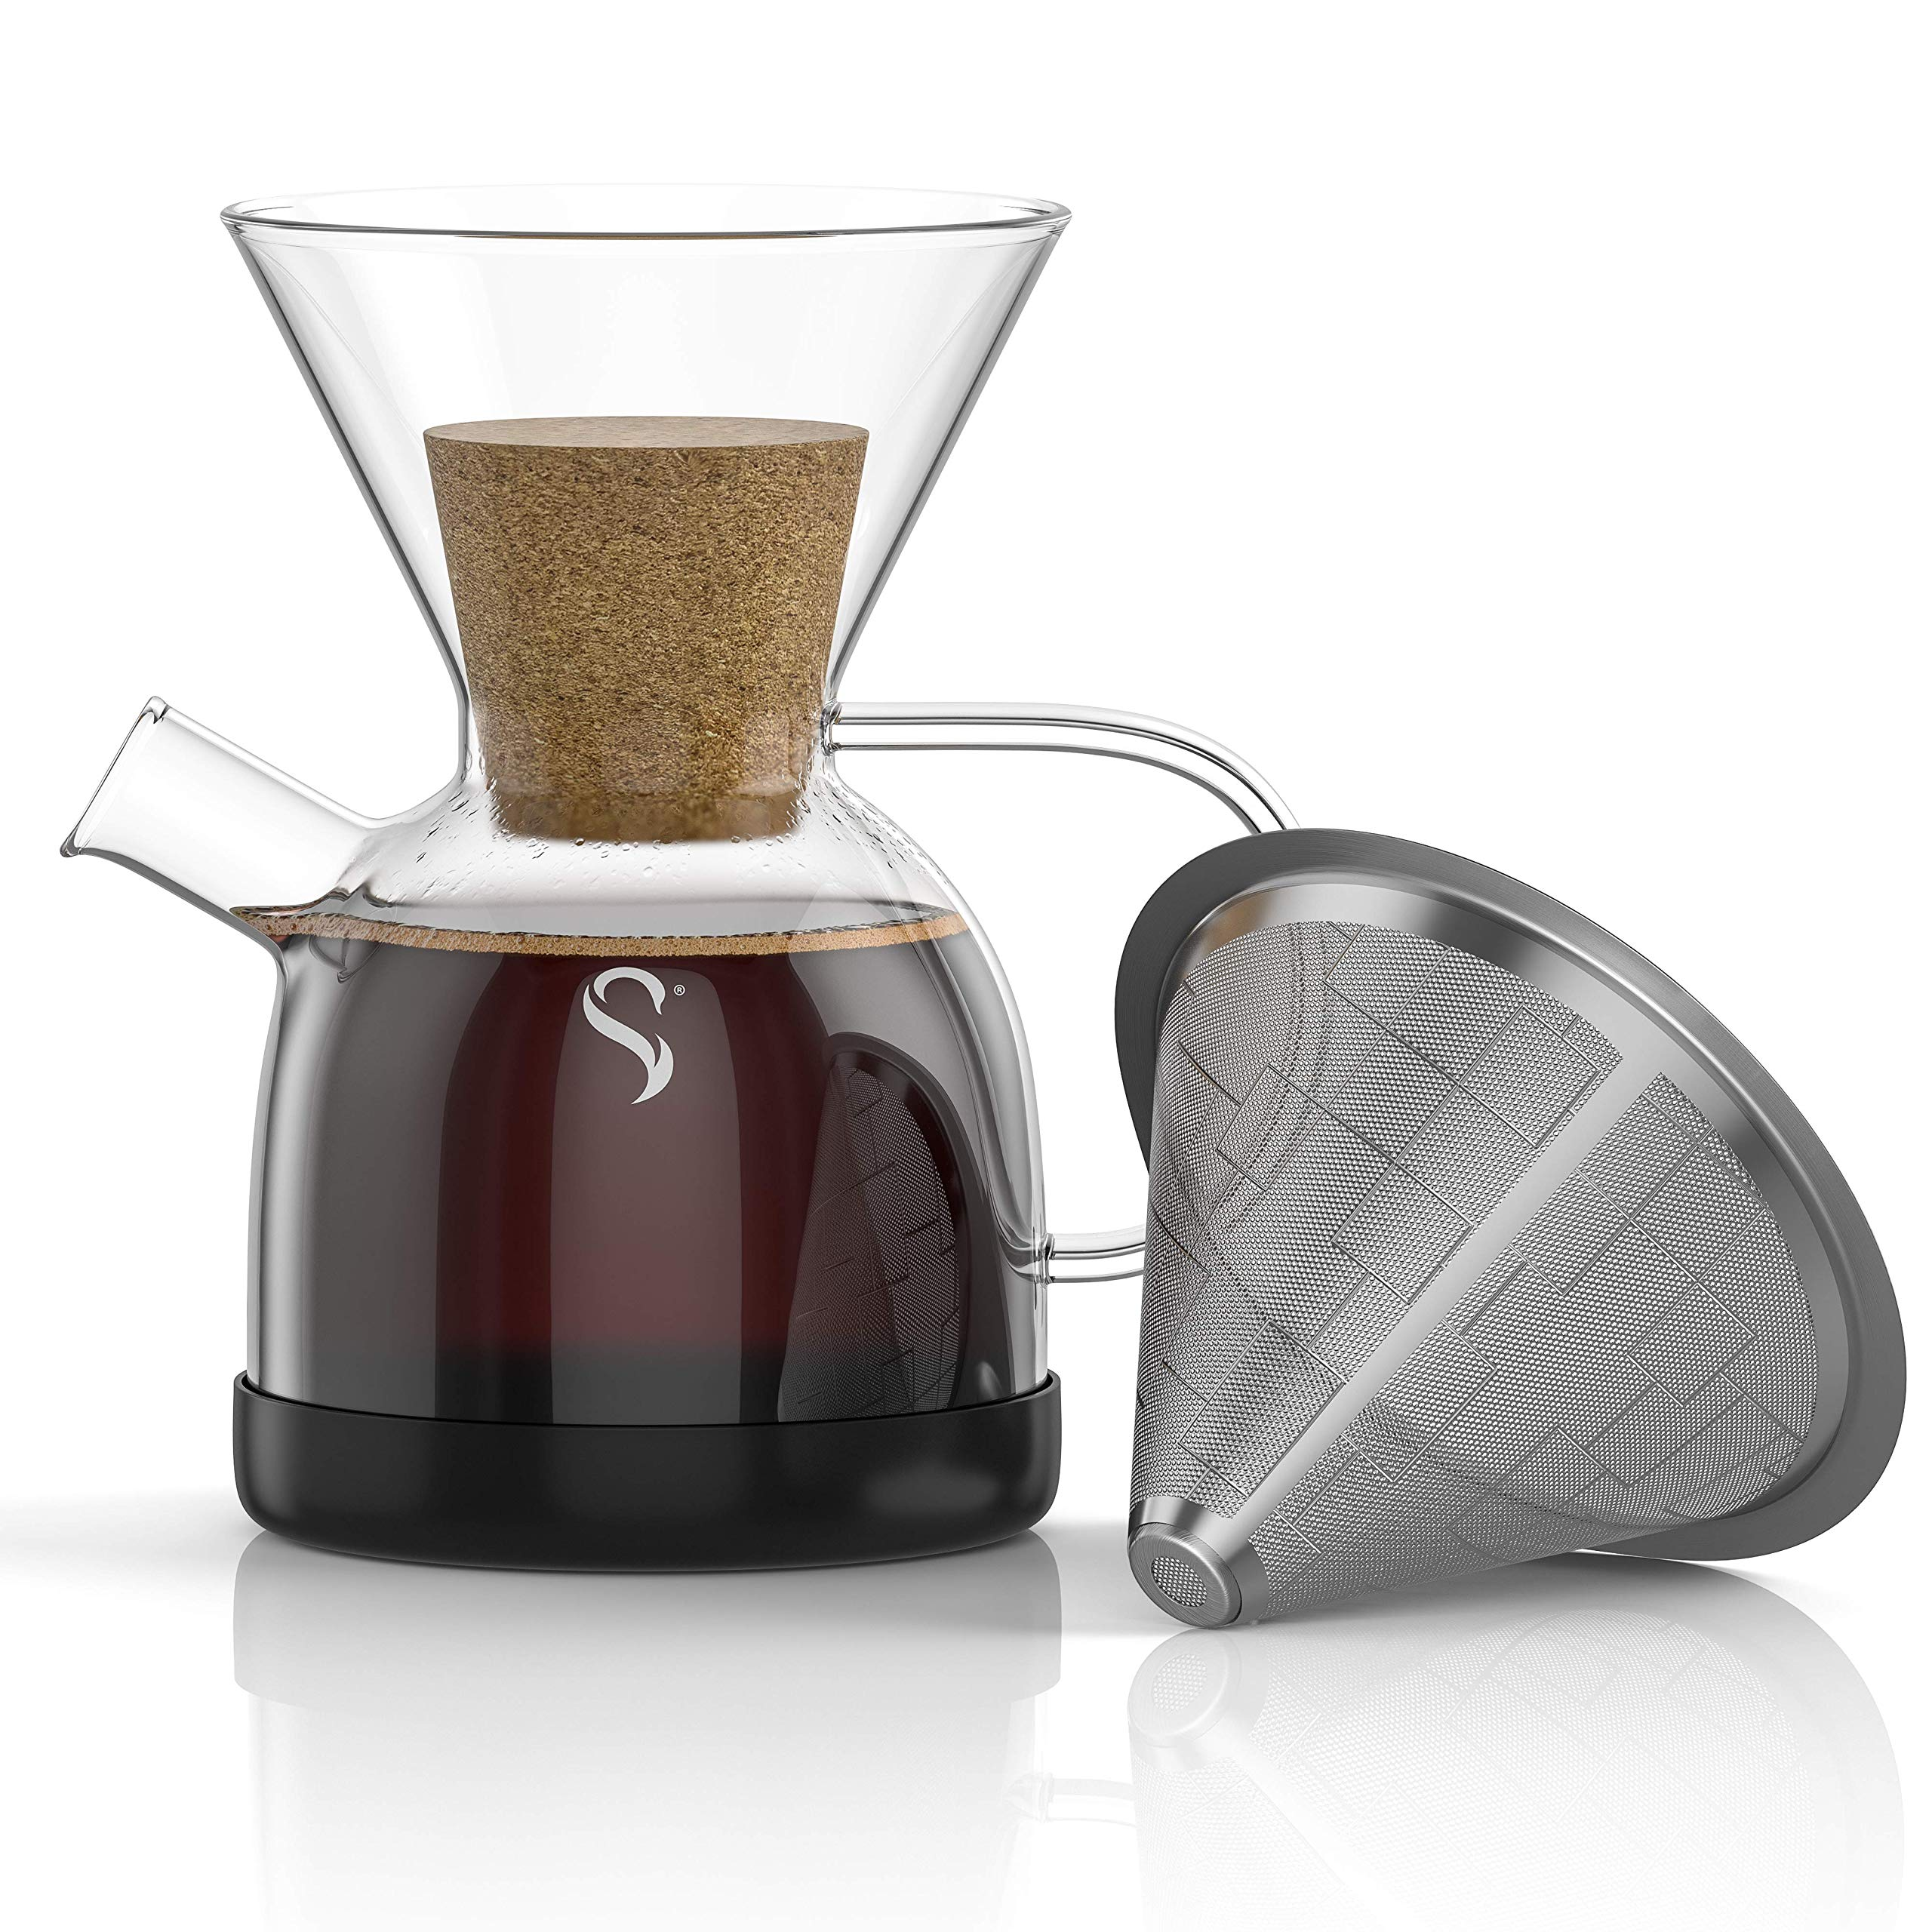 Shanik Pour Over Coffee Maker with Handle - Borosilicate Glass Coffee Maker - Drop Resistant Silicone Base - Rust Resistant Stainless Steel Paperless Filter/Dripper - 0.5L / 17oz by Shanik